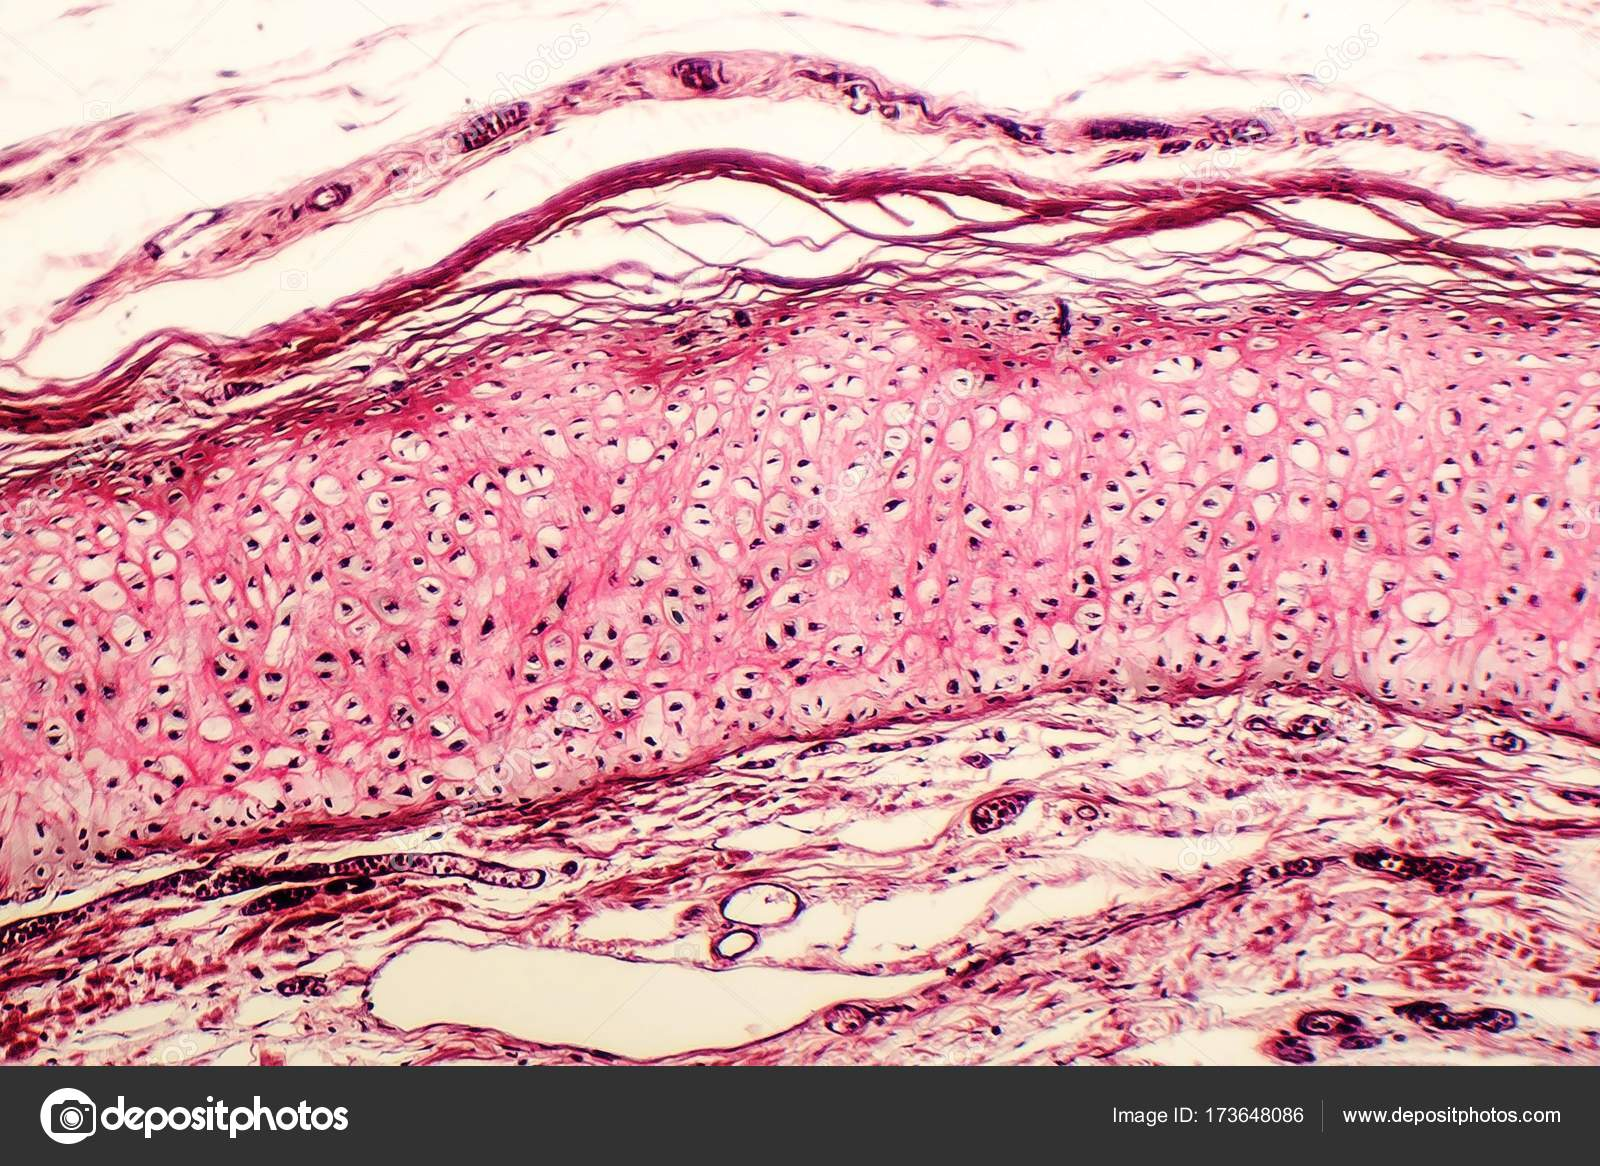 Picture Cartilage Tissue Elastic Cartilage Of Human Outer Ear